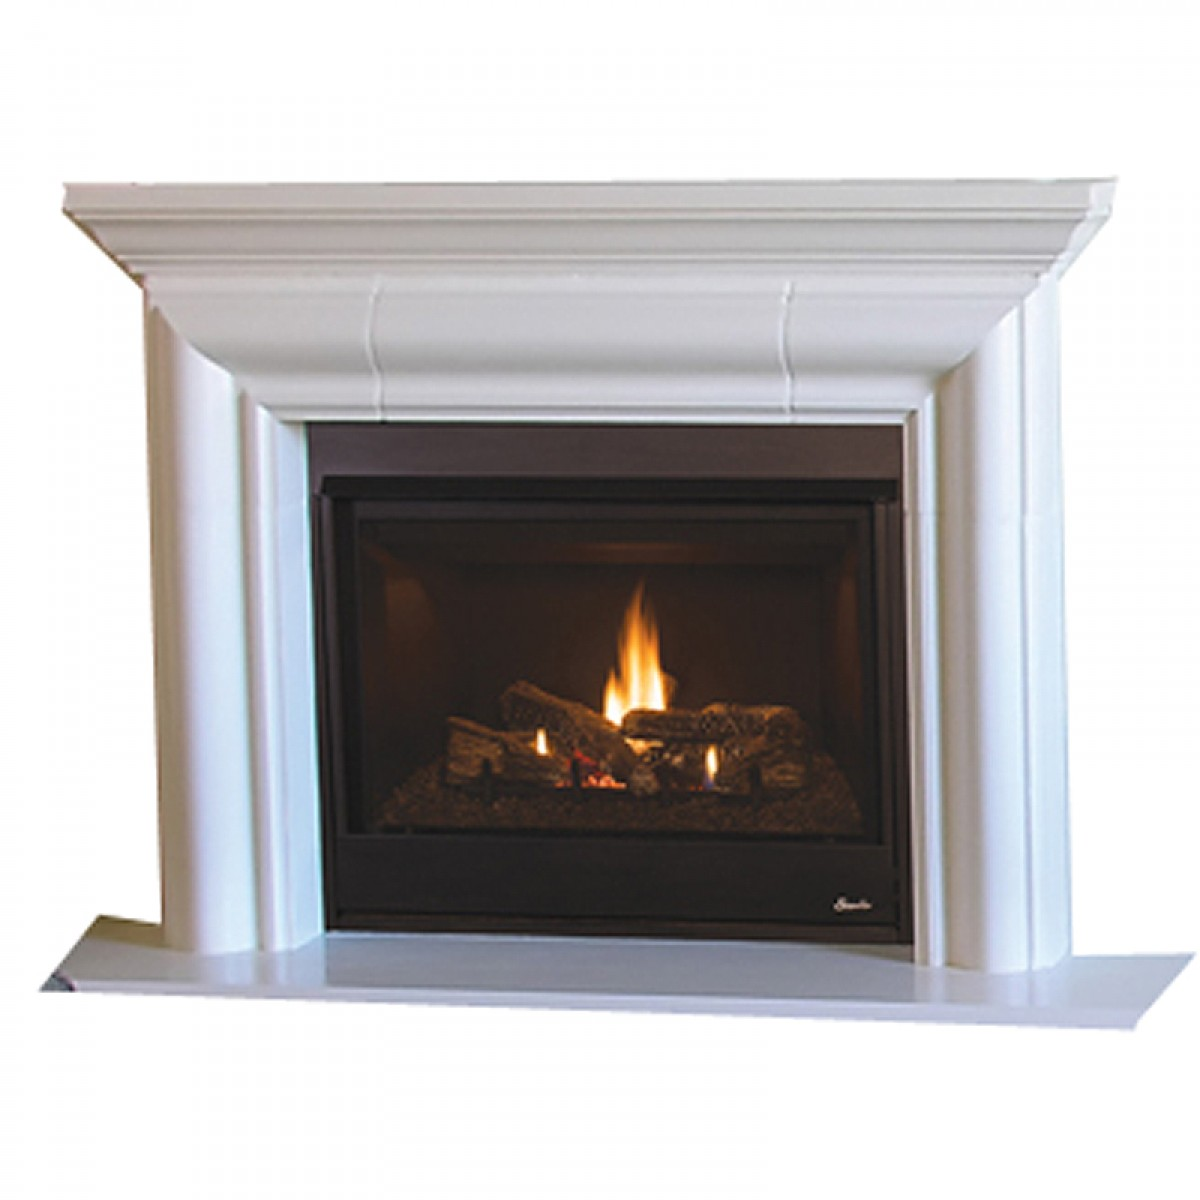 Get a great deal on the IHP Superior DRT3000 Direct Vent Gas Fireplace-F1397 at iBuyFireplaces. We stock the full line of IHP Superior Fireplaces at iBuyFireplaces.